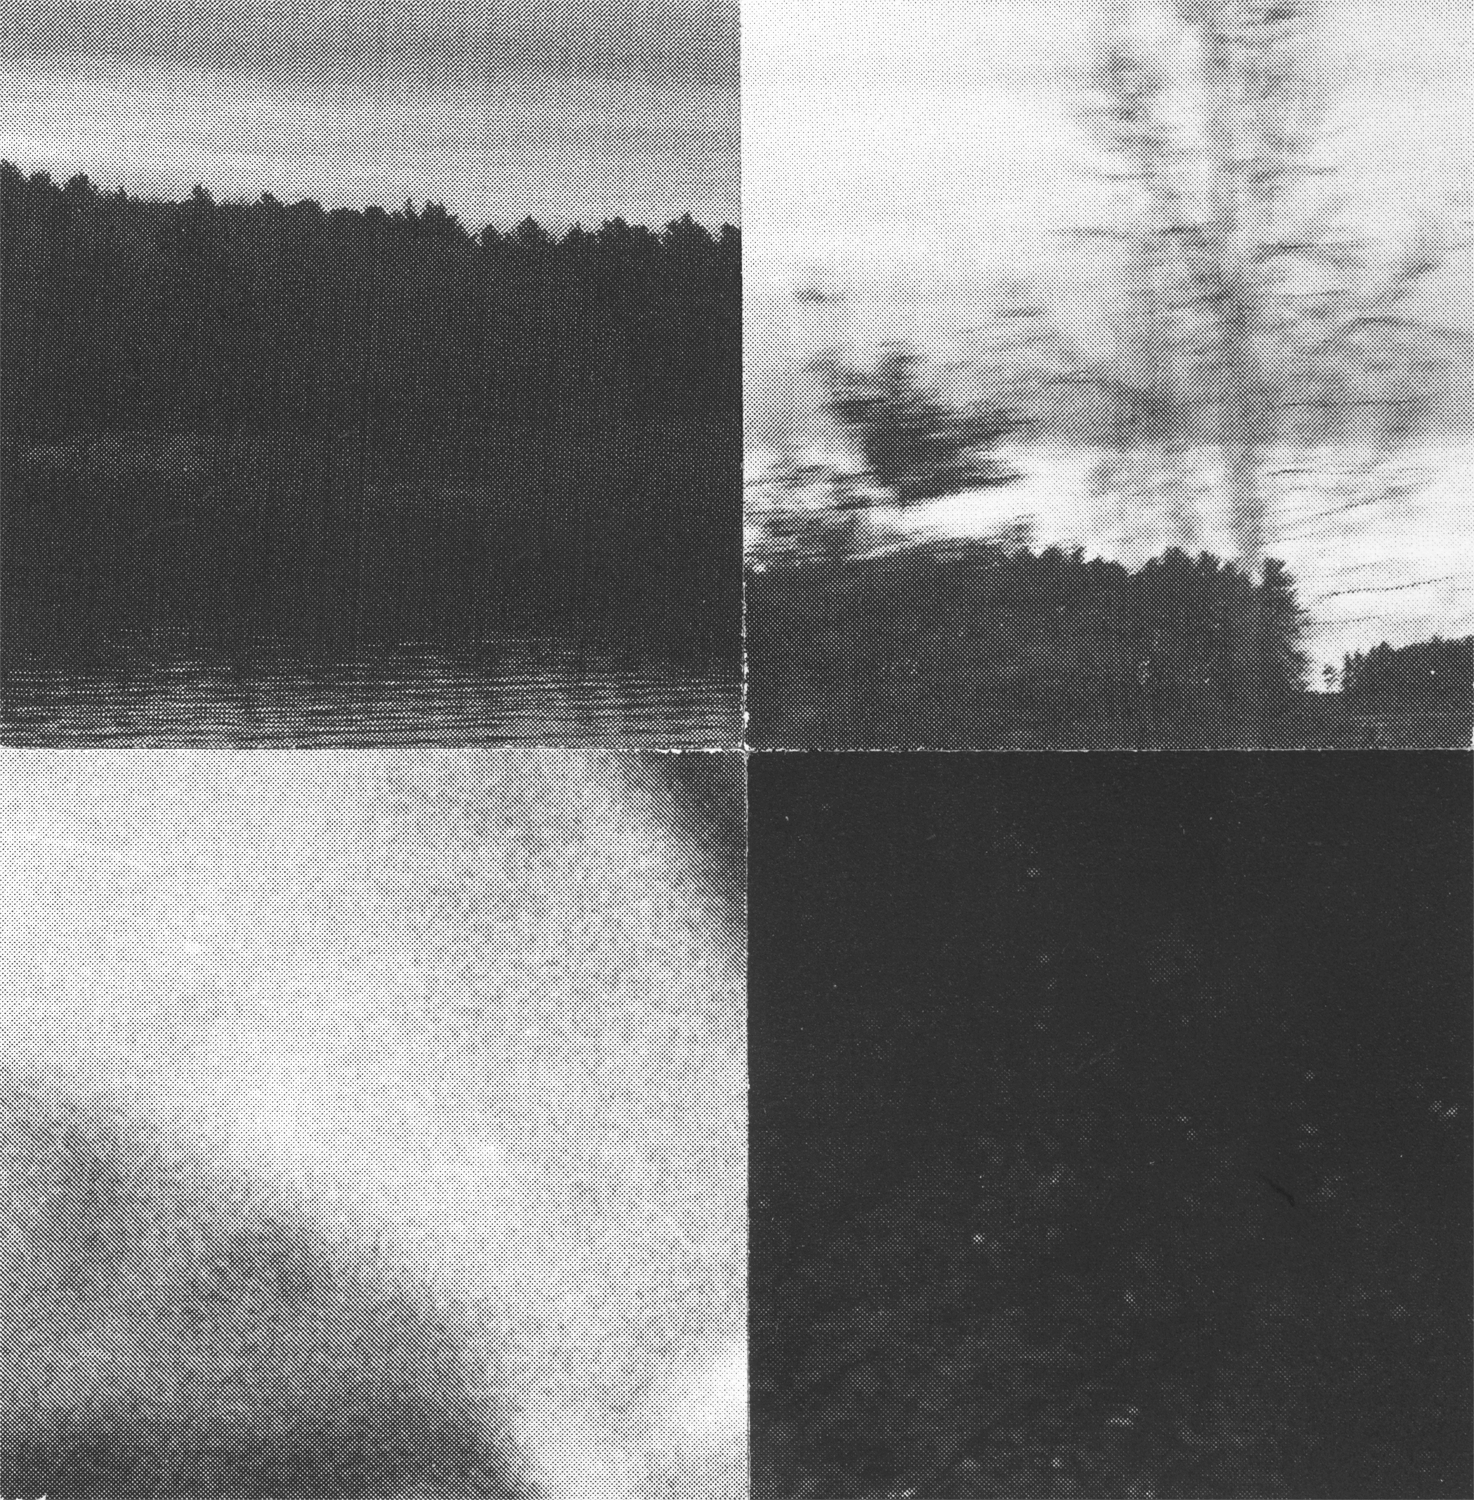 Square_Collages_Lakeside_Crop&Trim.png